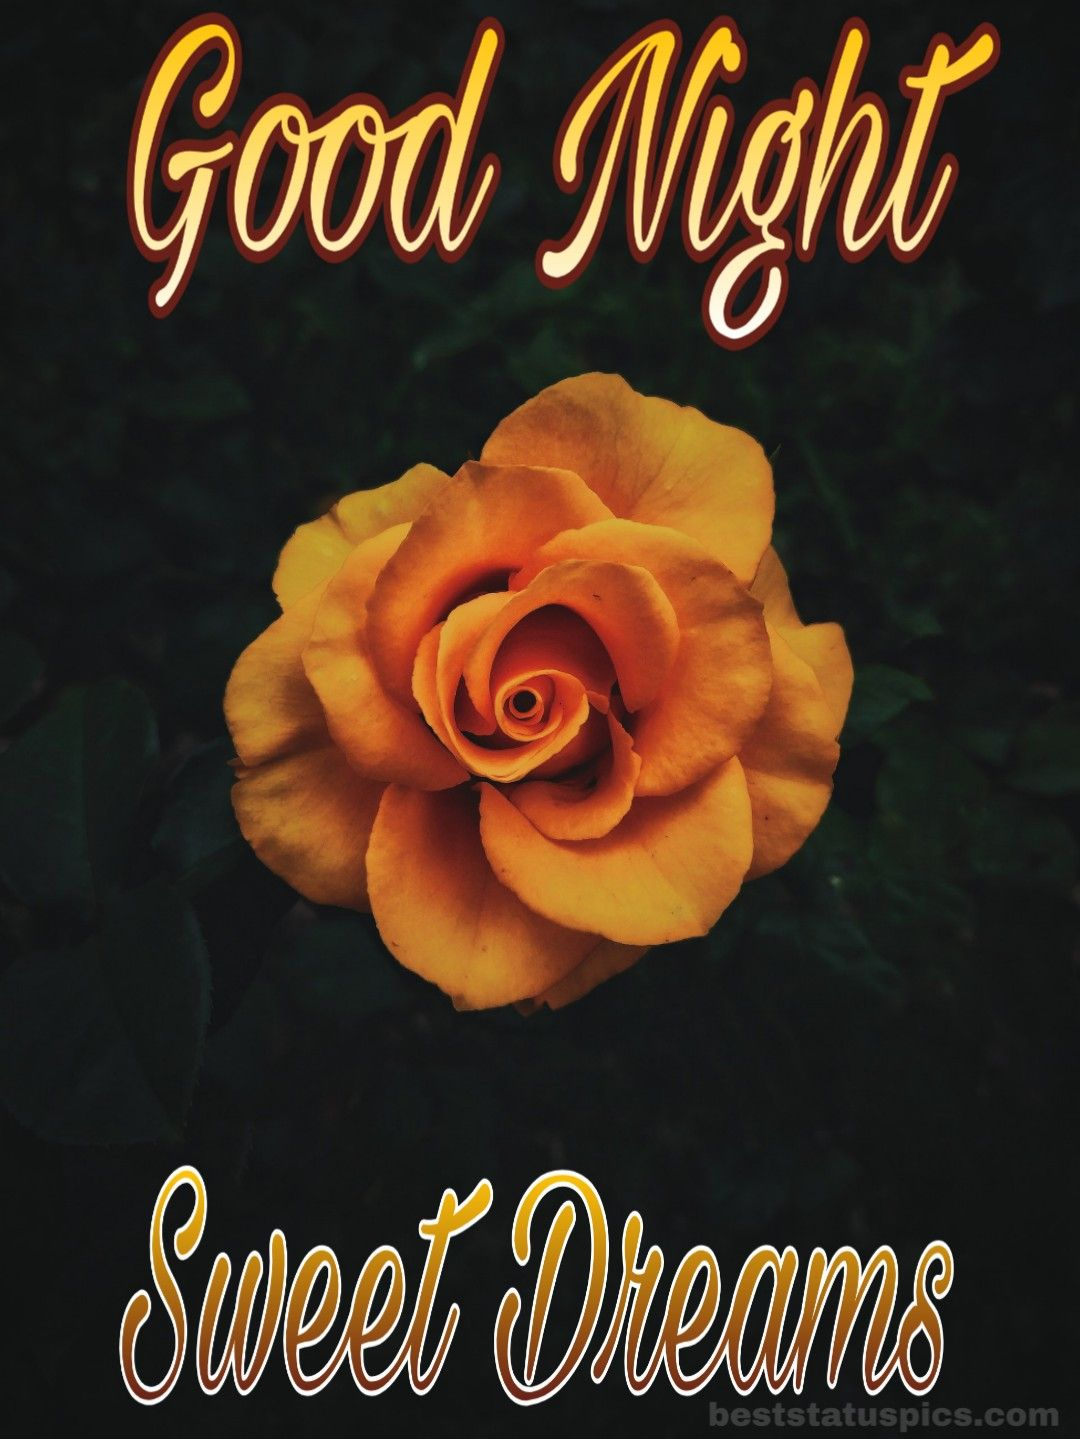 Good Night Yellow Rose Flower Images In 2020 Yellow Rose Flower Good Night Flowers Flower Images